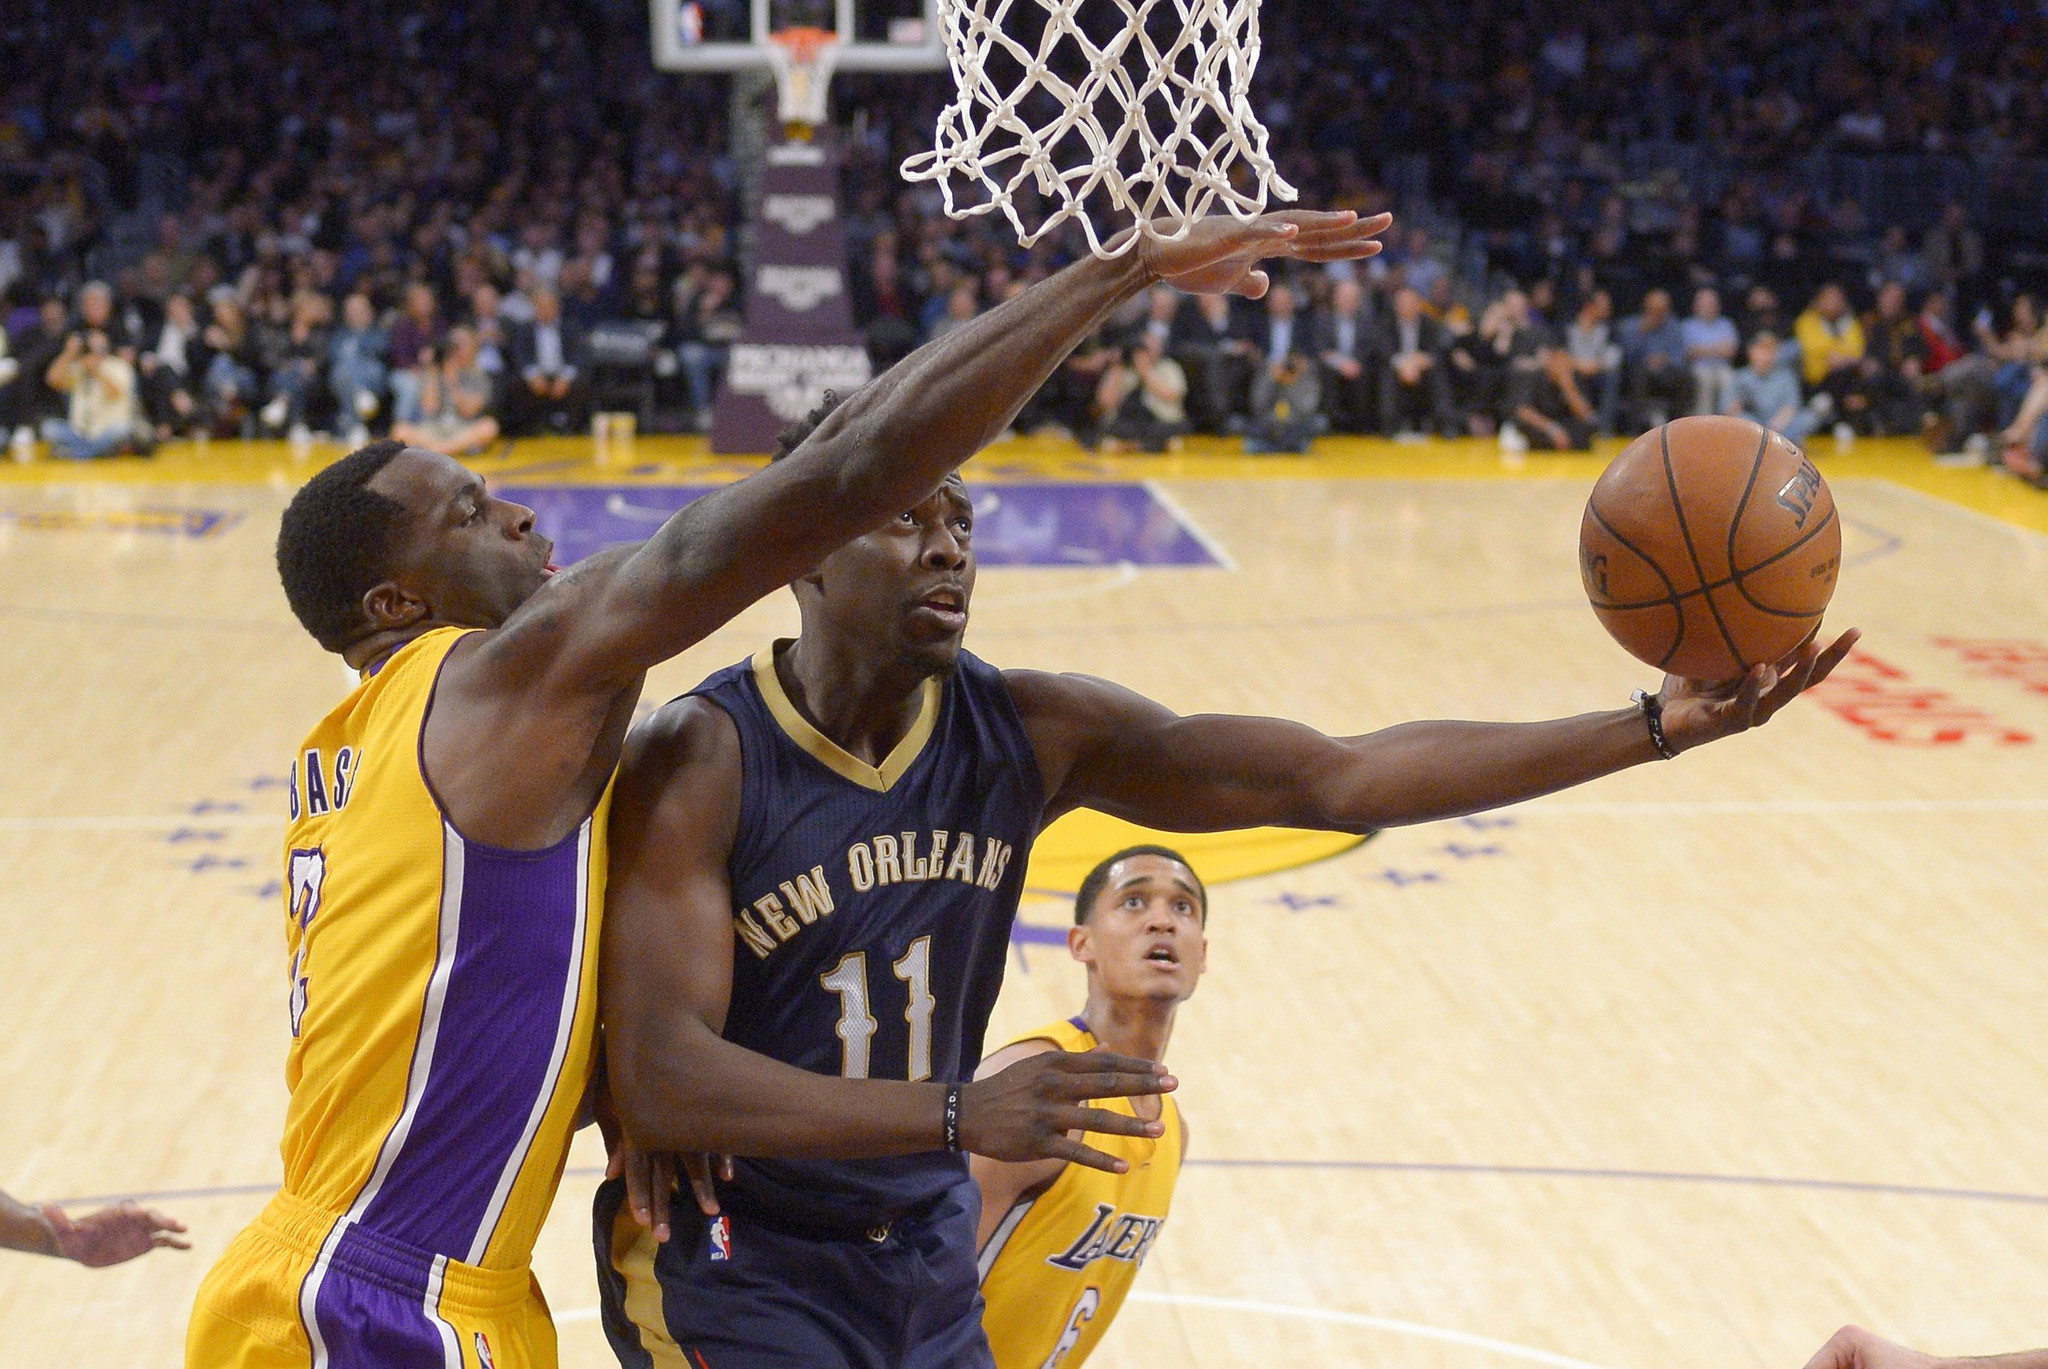 La-sp-ln-preview-lakers-at-new-orleans-pelicans-20160203